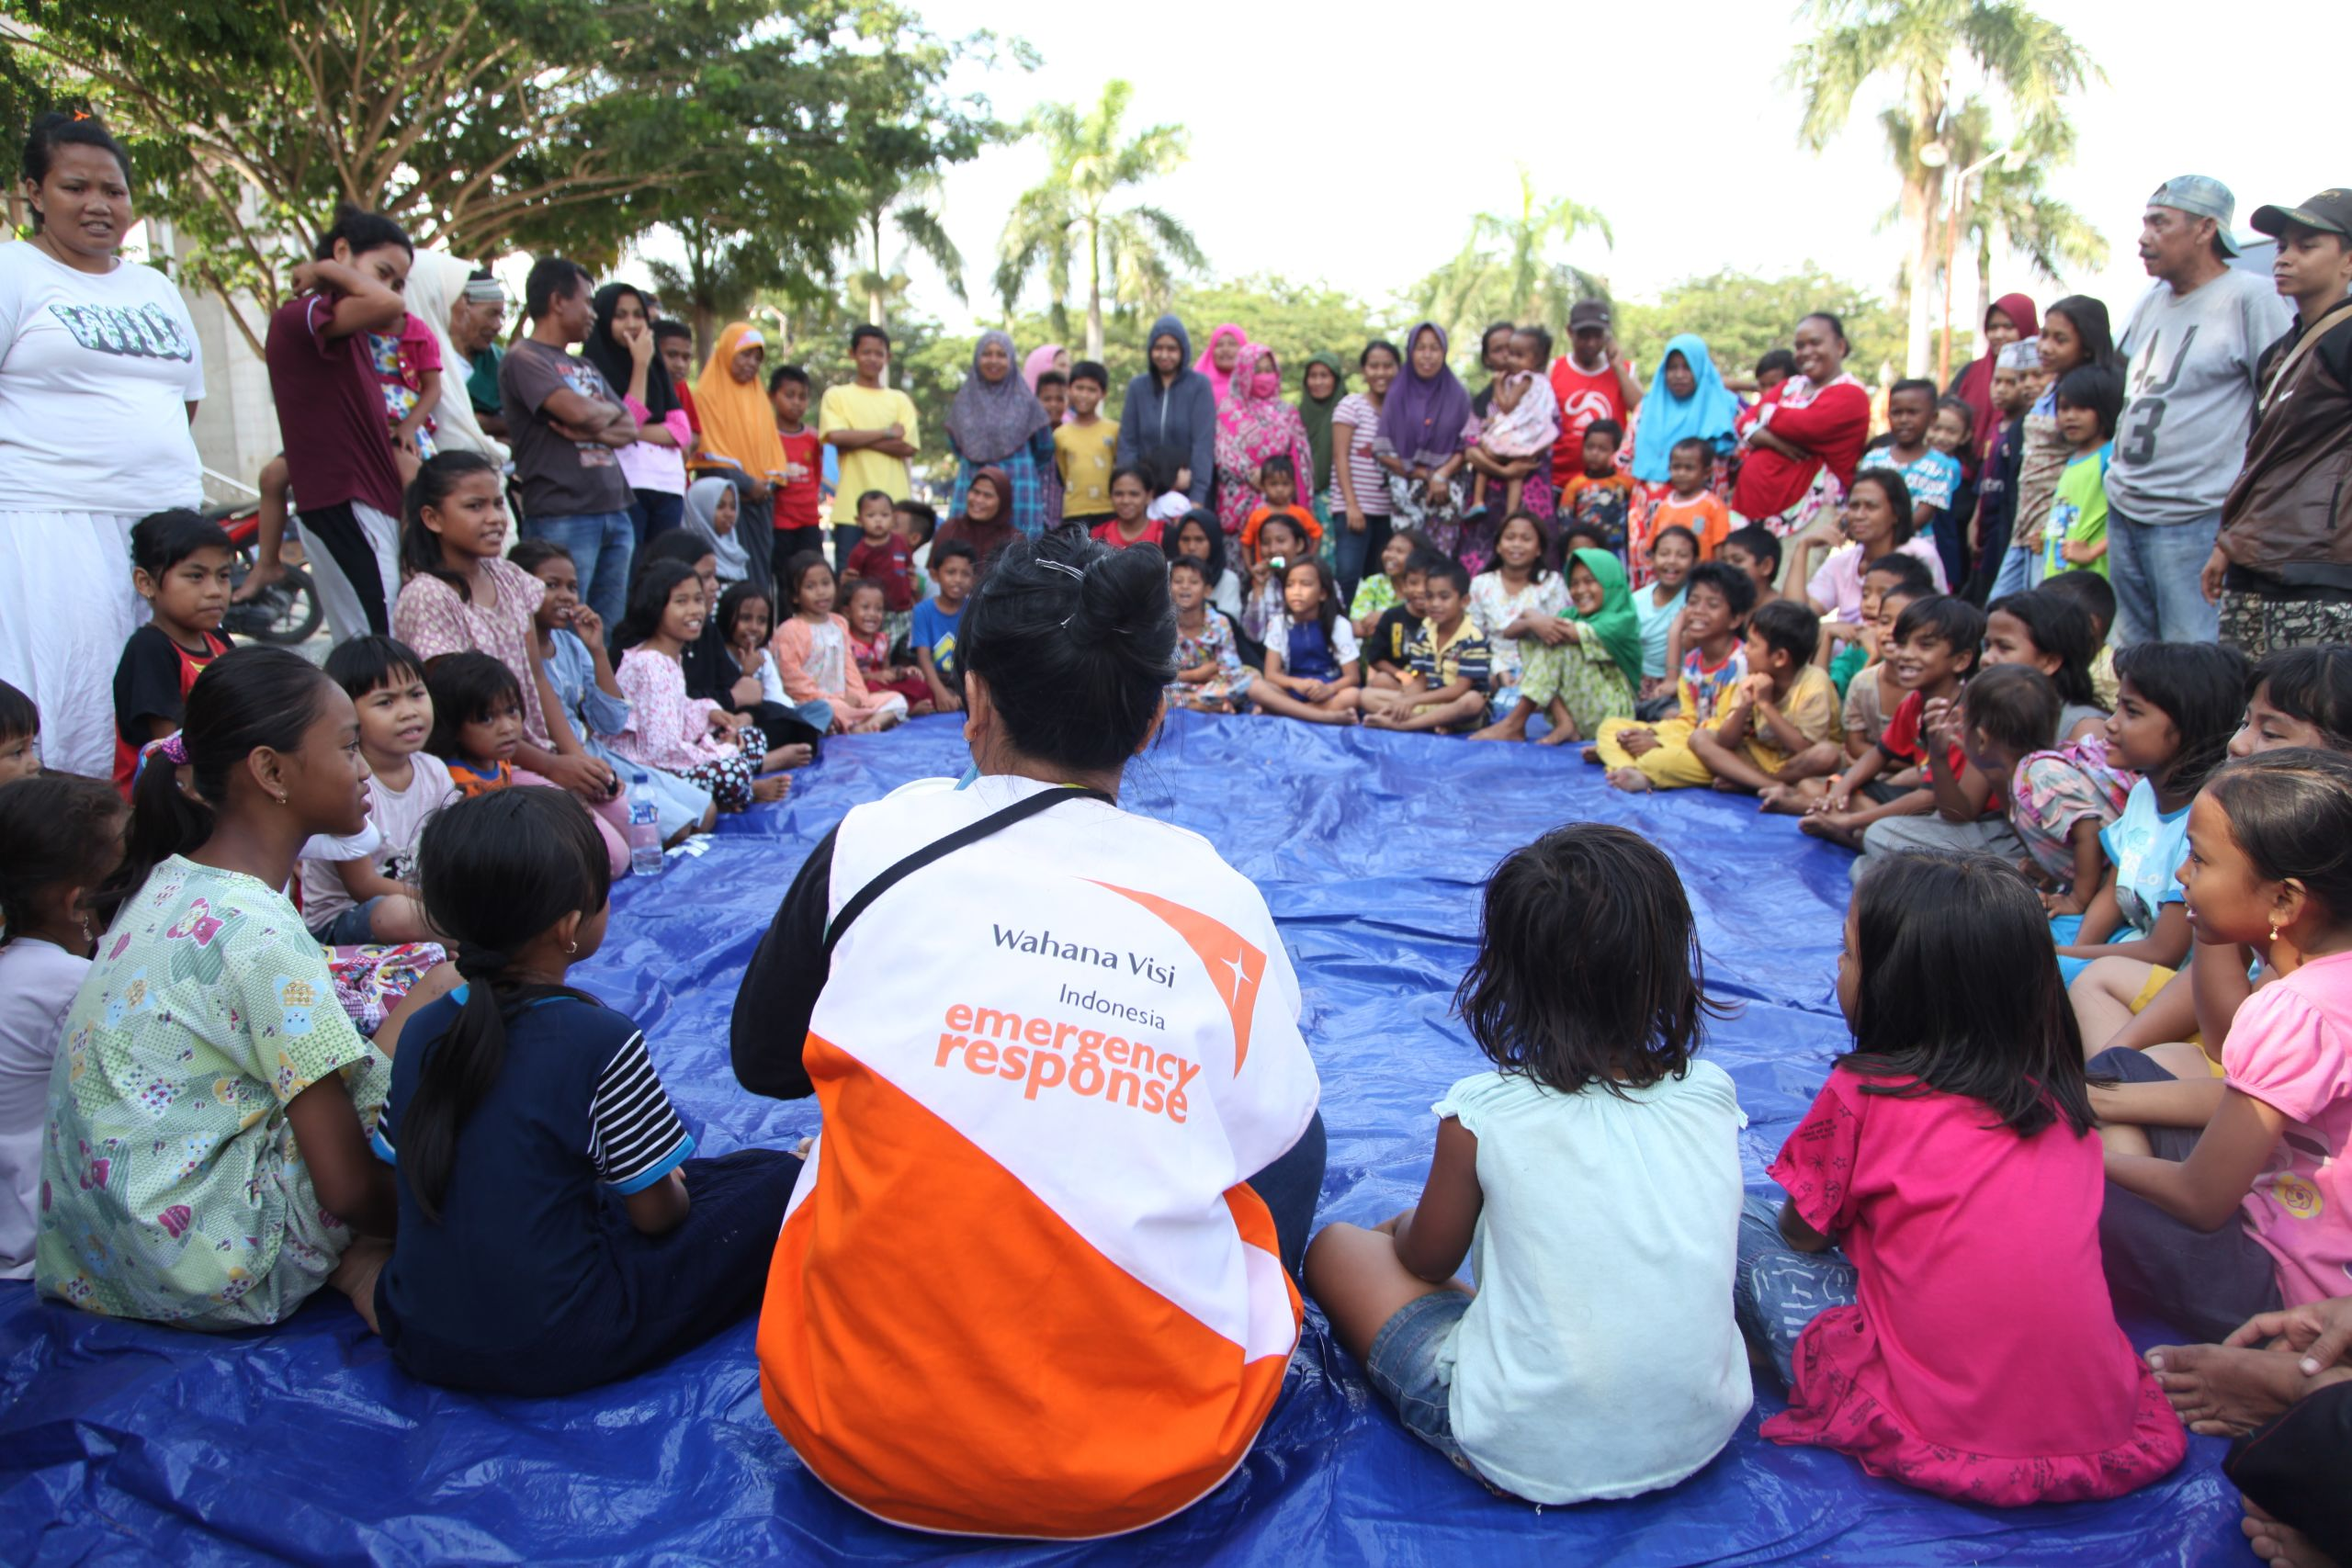 "<alt=""World Vision Indonesia emergency response member gathered with children and their families in a circle"">"